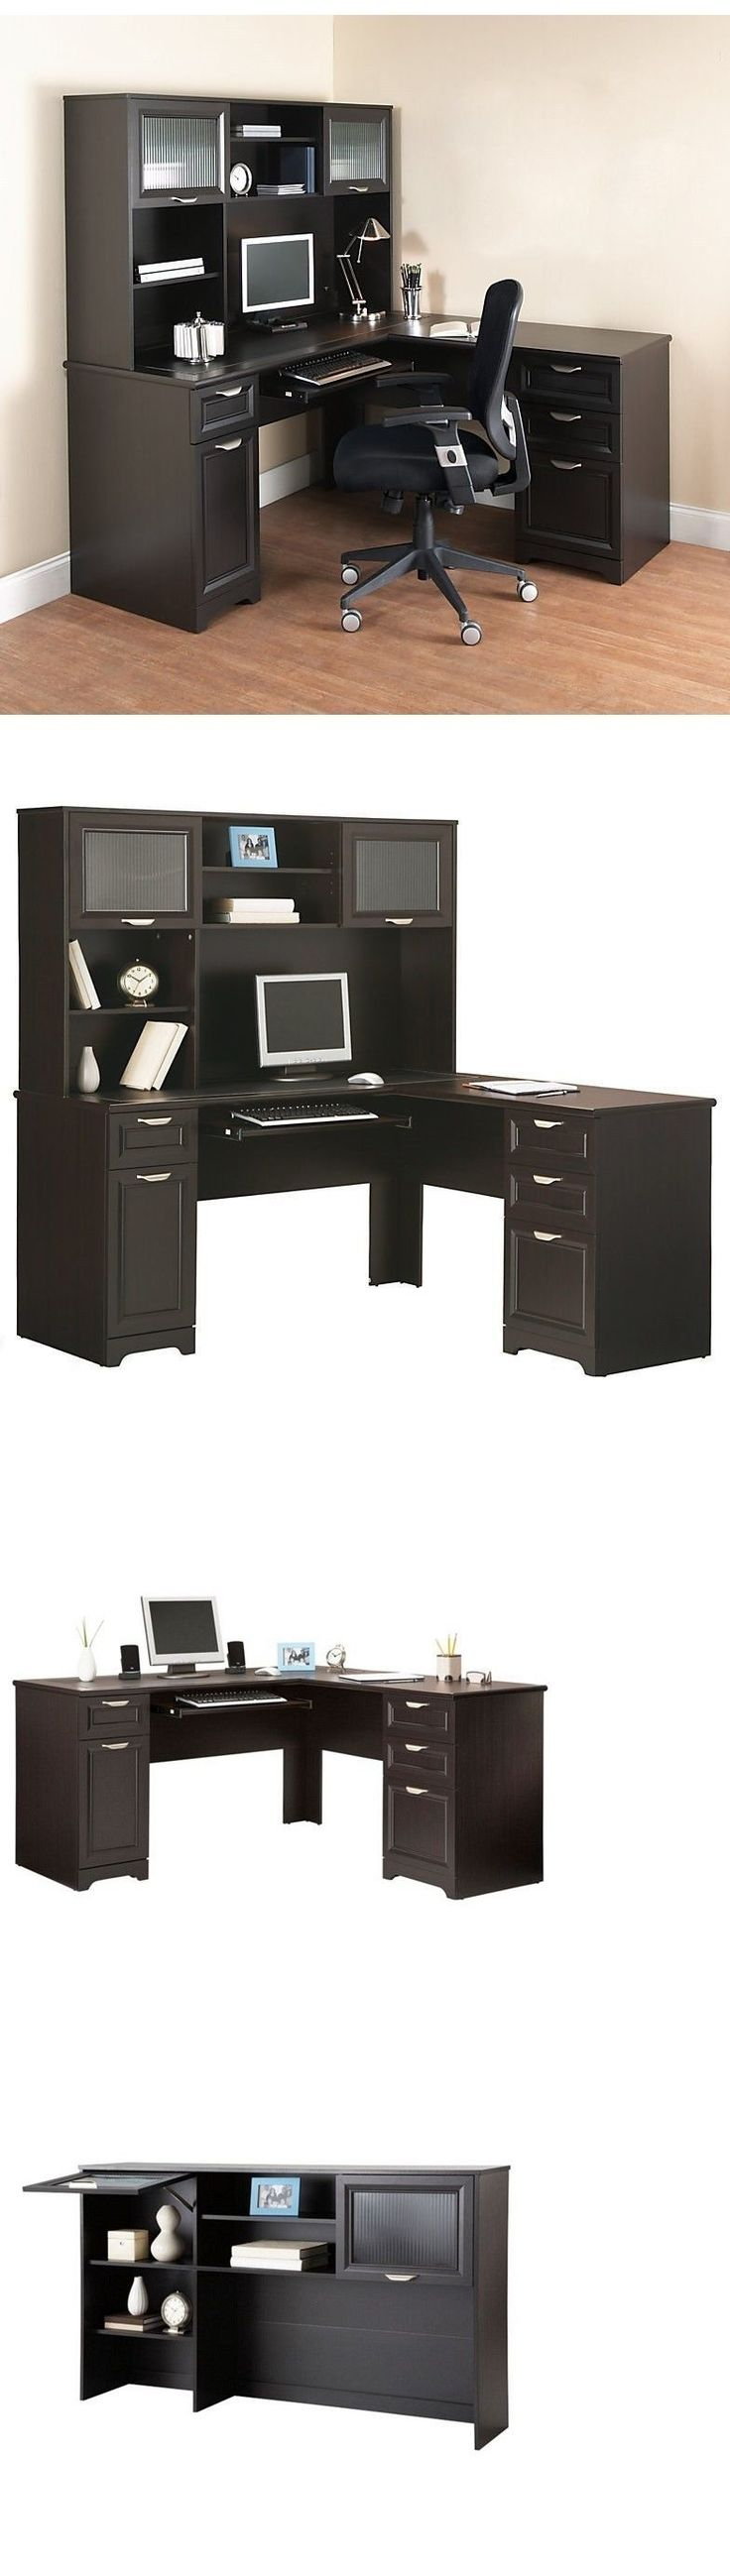 Office Furniture: New L-Shaped Office Desk With Hutch Computer Executive Corner Table Furniture Bk BUY IT NOW ONLY: $519.19